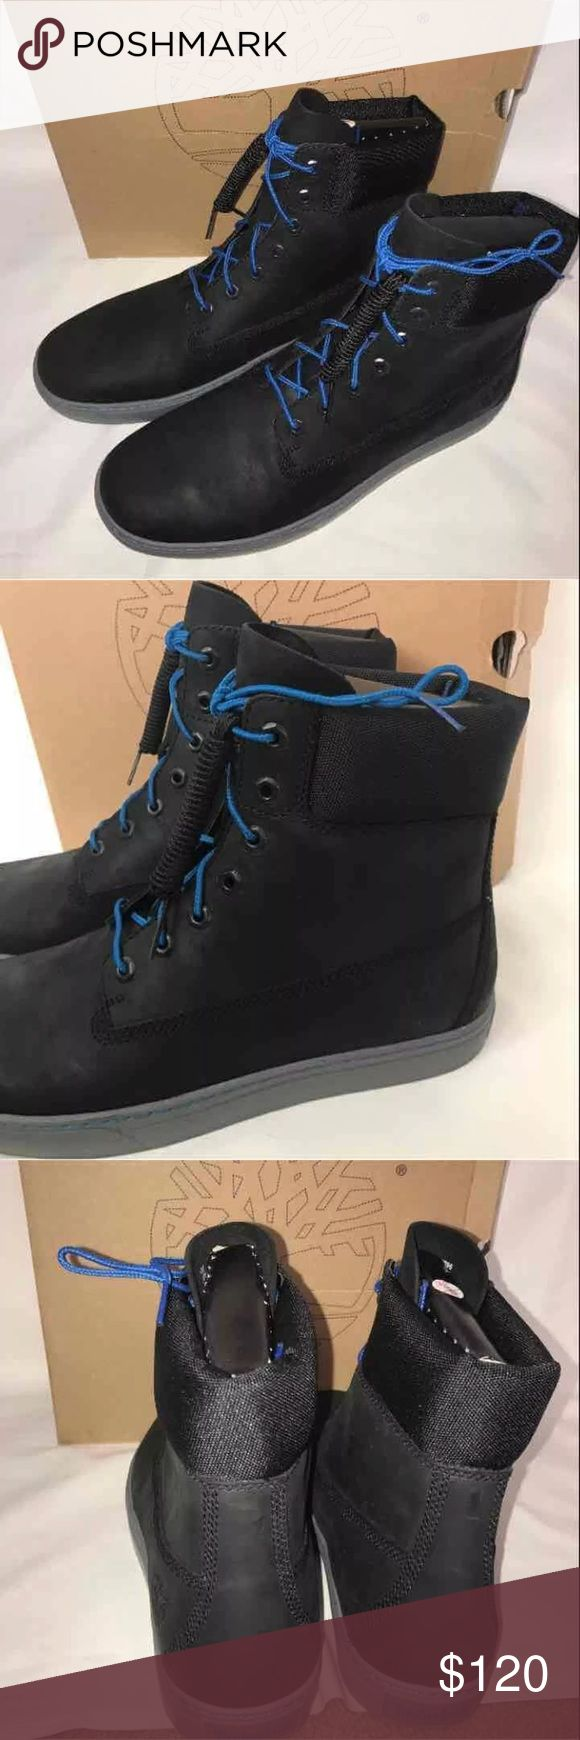 New Timberland earth keepers men's boots SZ 12 New Men's SZ 12 Timberland earth keepers 2.0 cupsole 6in boots Black Comes with blue laces and black laces Timberland Shoes Boots